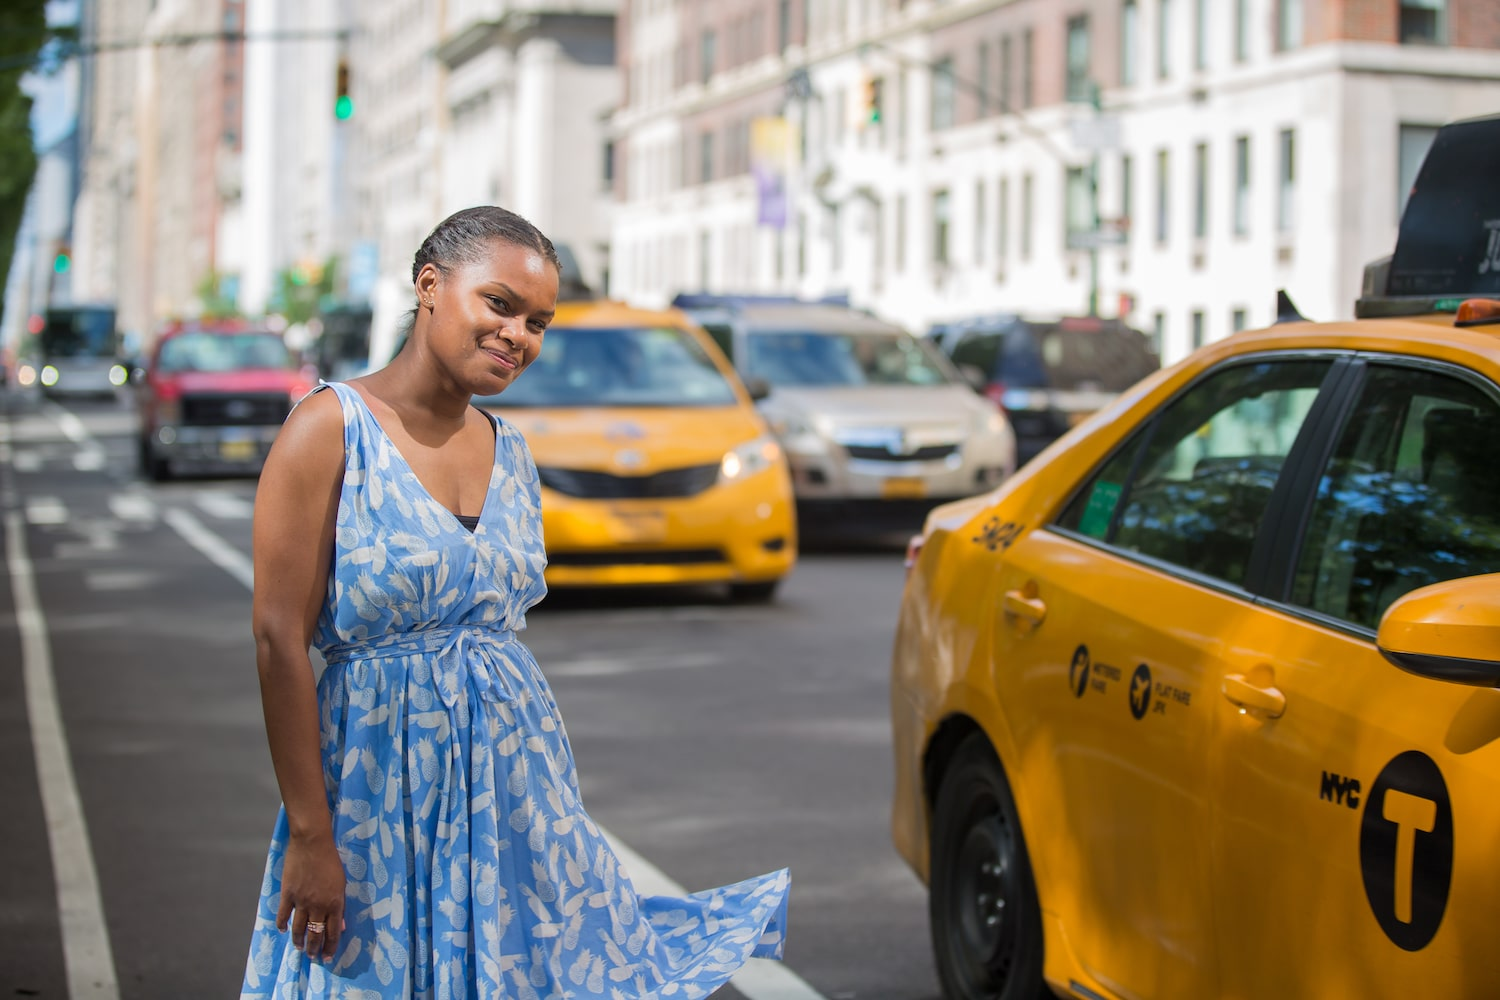 manhattan-photographe-new-york Mon superbe shooting photo à New York avec Johnny !